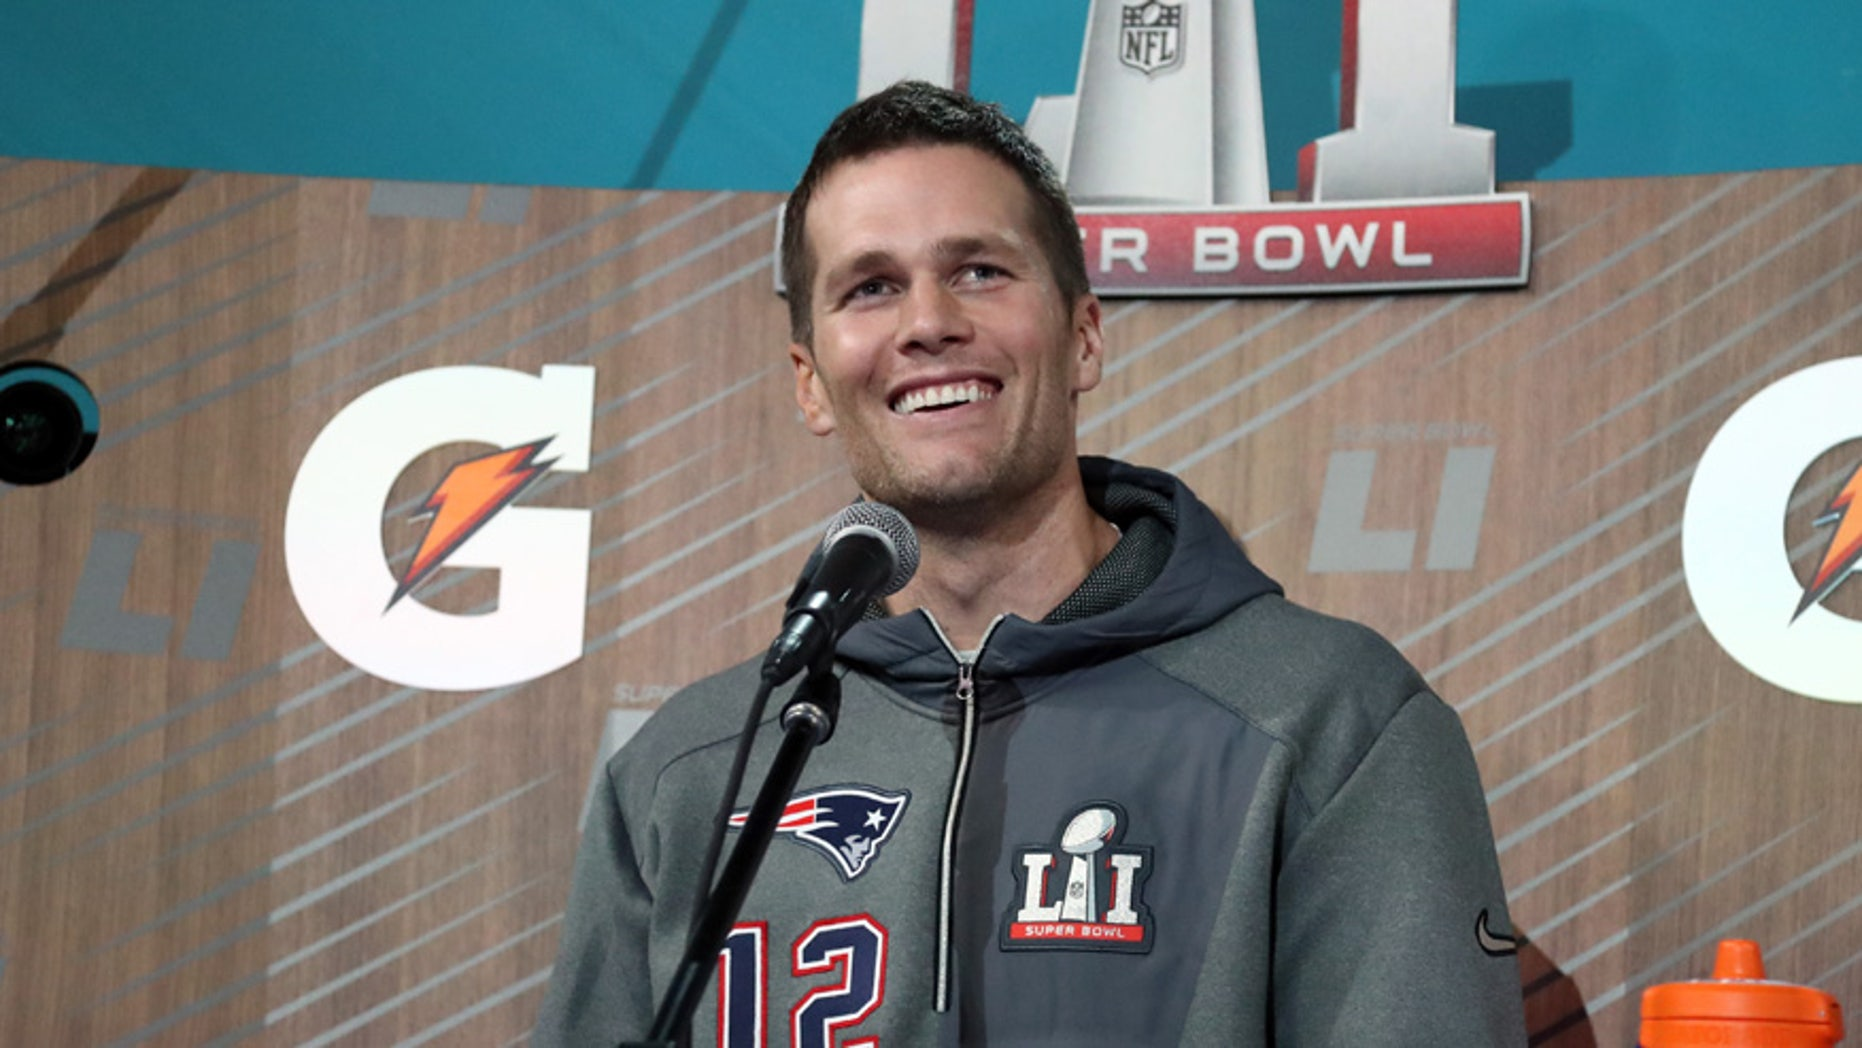 Tom Brady says drinking water prevents sunburn, Twitter